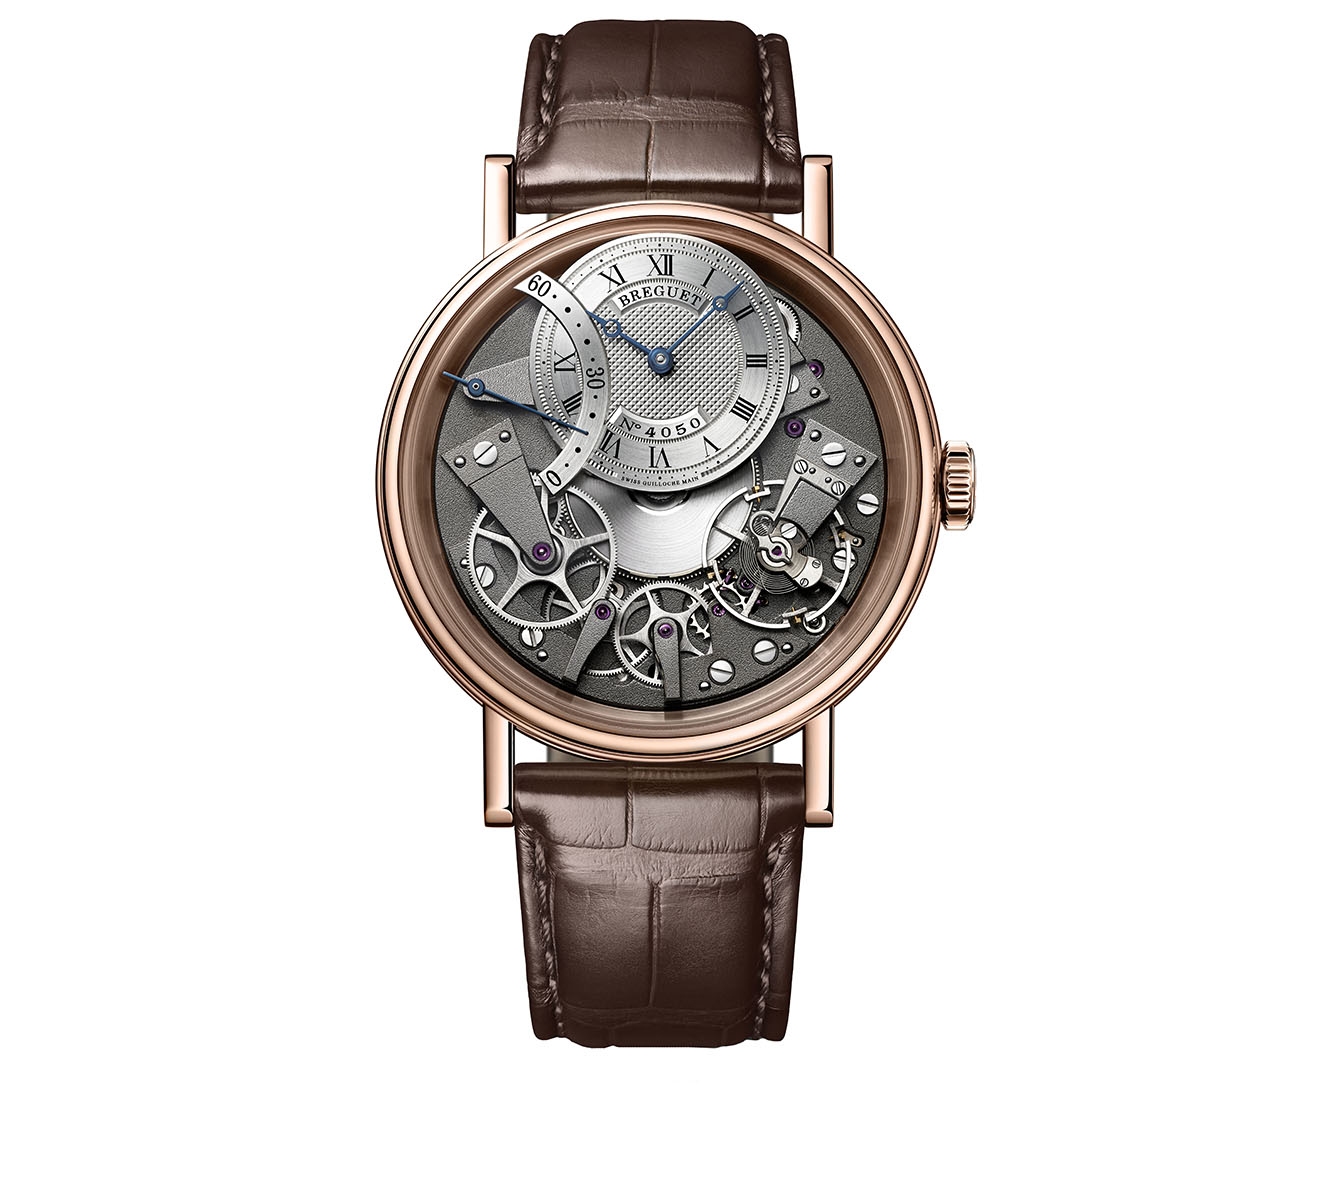 Часы Tradition Automatique Seconde Retrograde Breguet Tradition 7097BR G1 9WU - фото 1 – Mercury